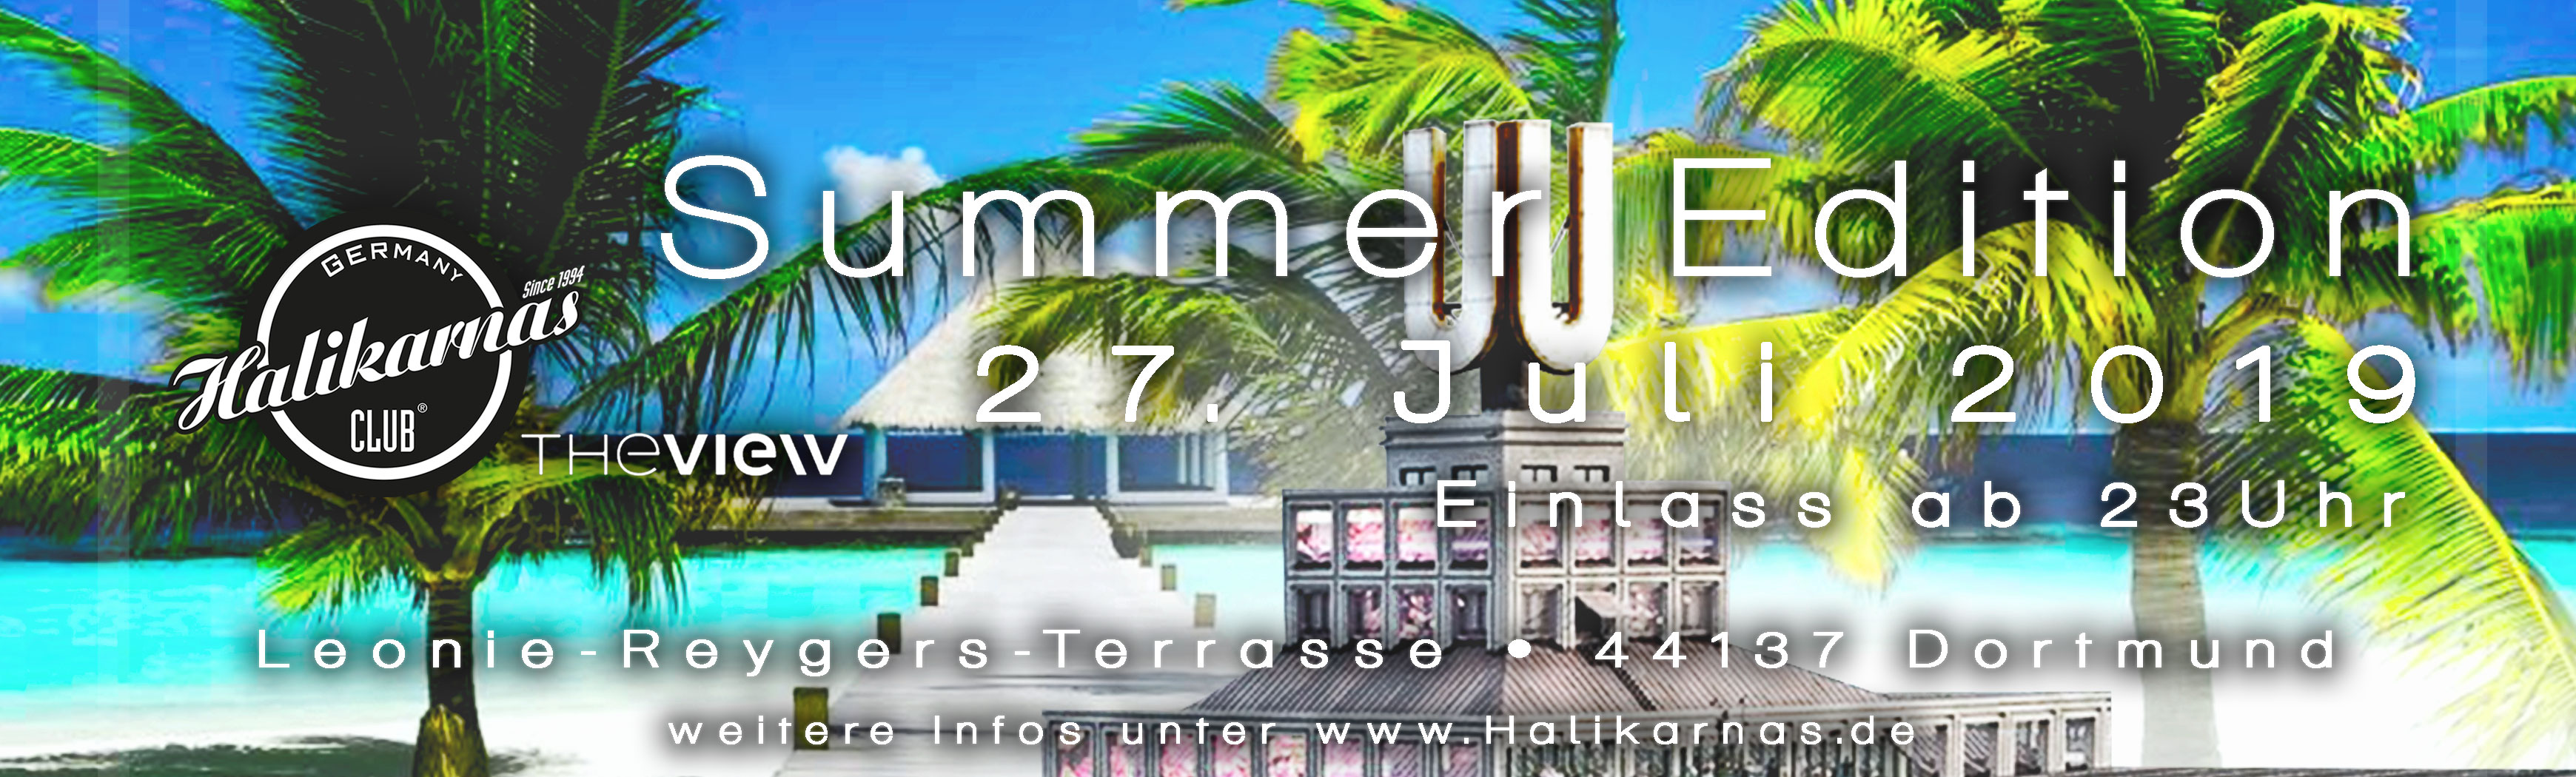 27.07. Halikarnas Summer Edition @ View Dortmund